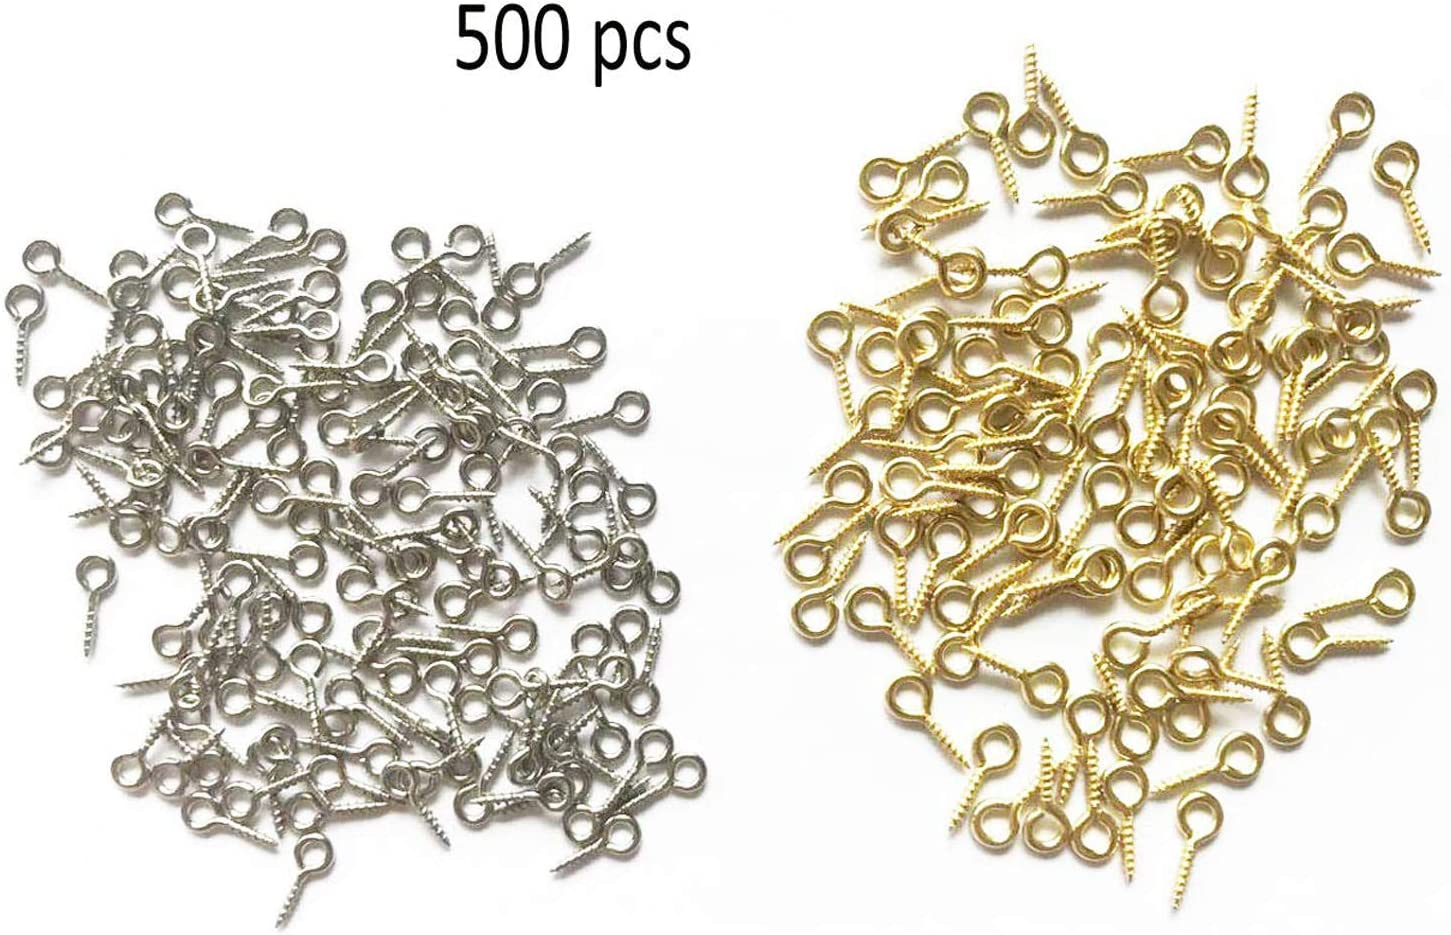 Small Mini Eyes Screw-in Hooks Jewelry Eye Pin,Silver+Gold Colors 500 PCS